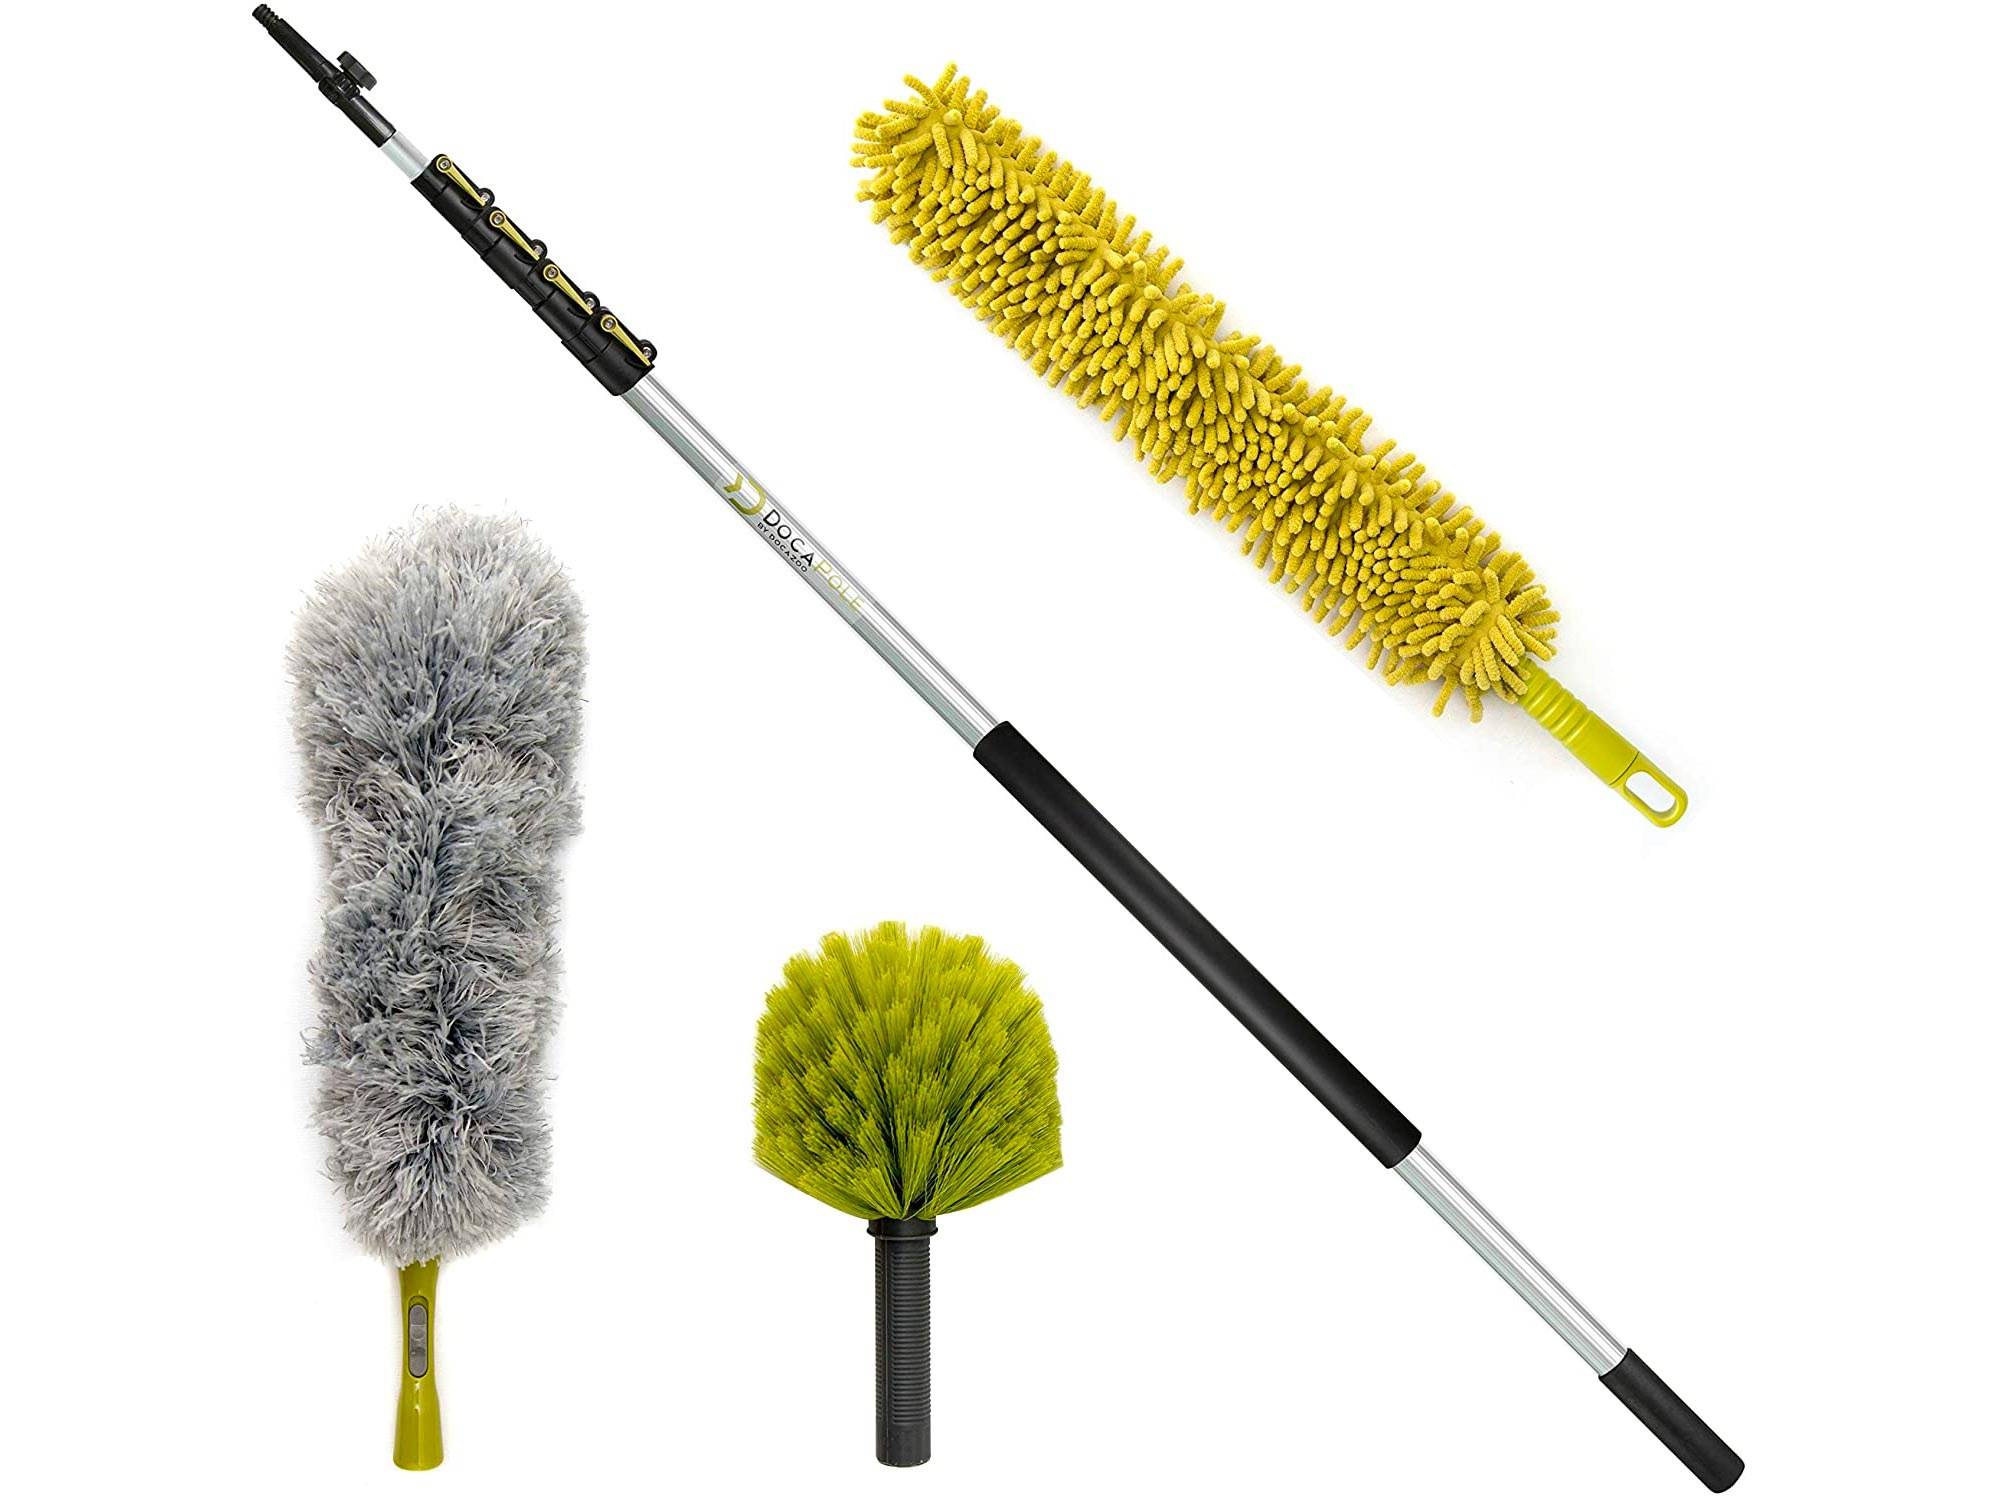 DocaPole 36 Foot High Reach Dusting Kit with 7-30 Foot Extension Pole // Cleaning Kit Includes 3 Dusting Attachments // Cobweb Duster // Microfiber Duster // Ceiling Fan Duster